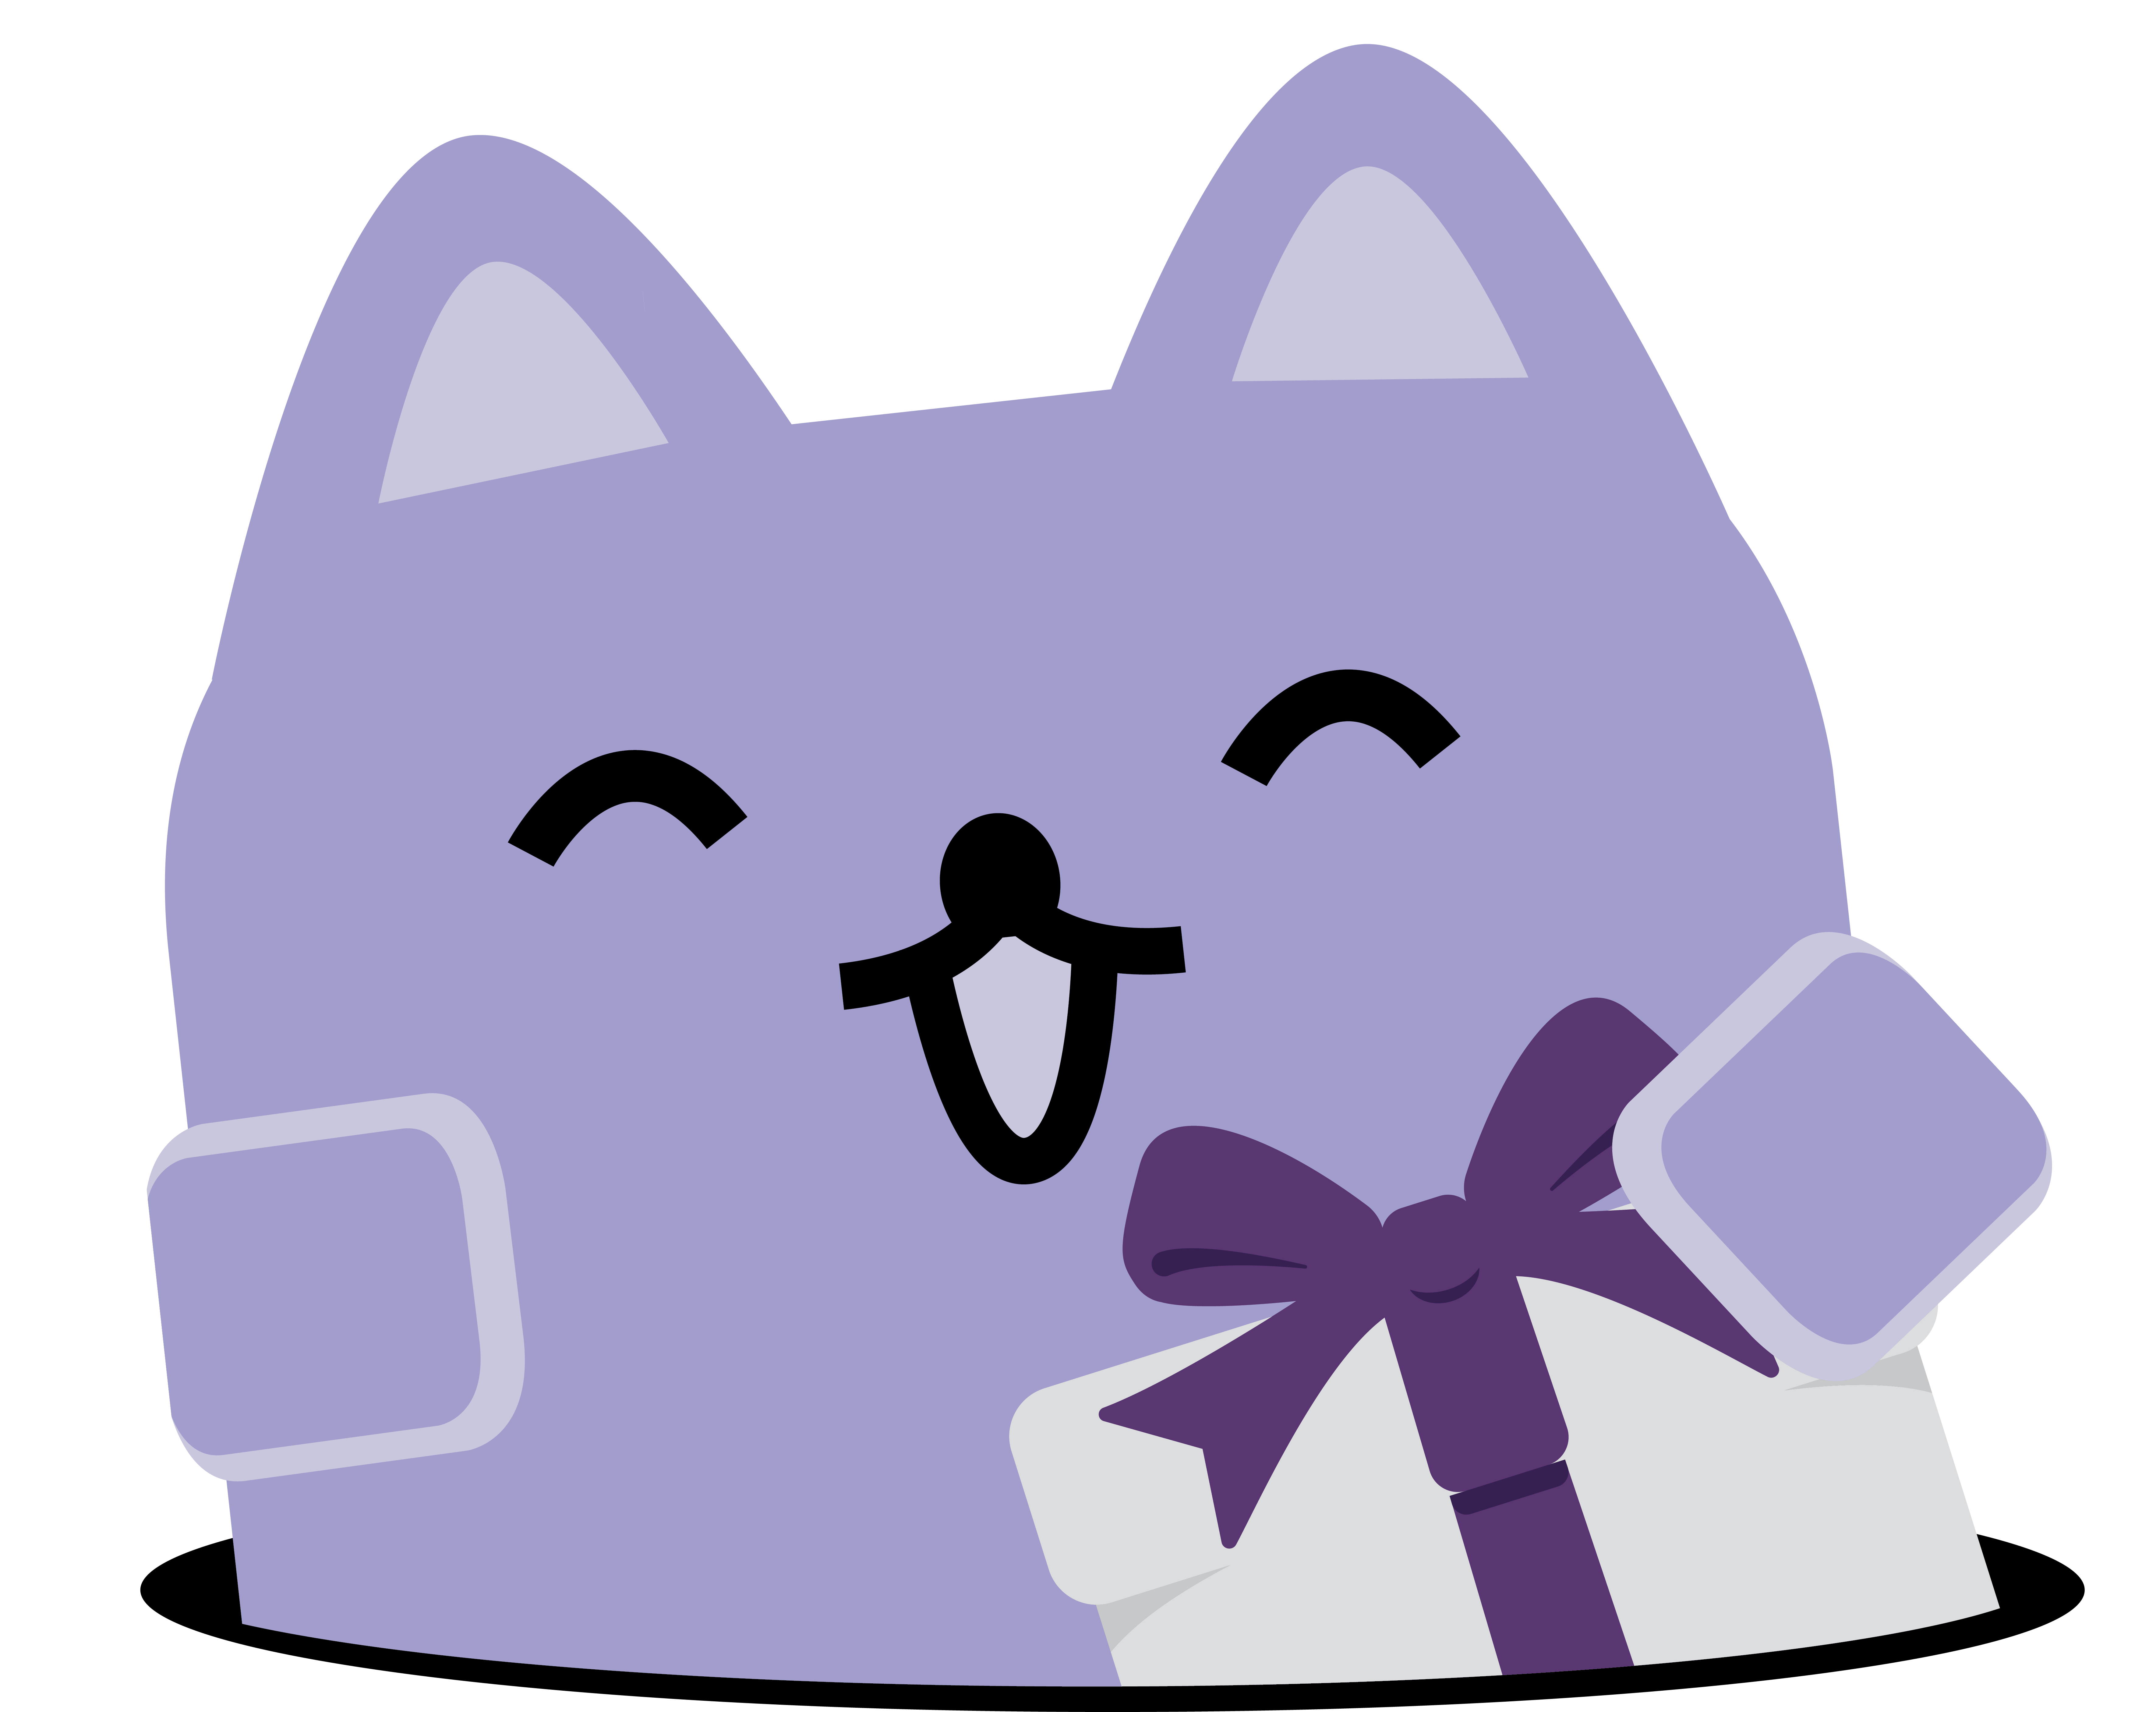 Broadcat, holding a gift.